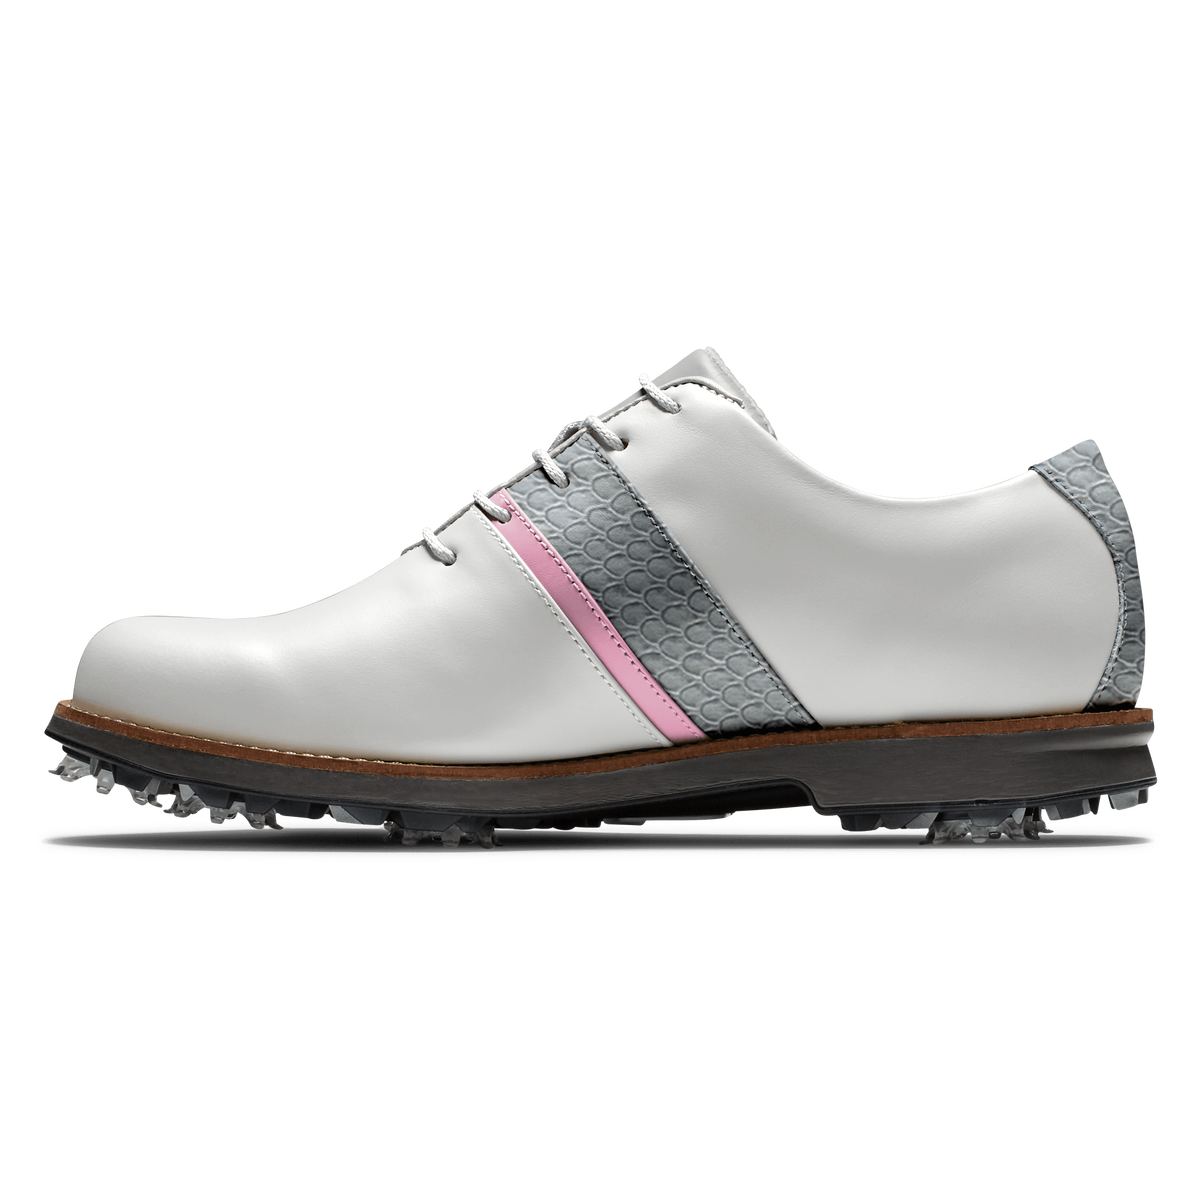 MyJoys Premiere Series Women